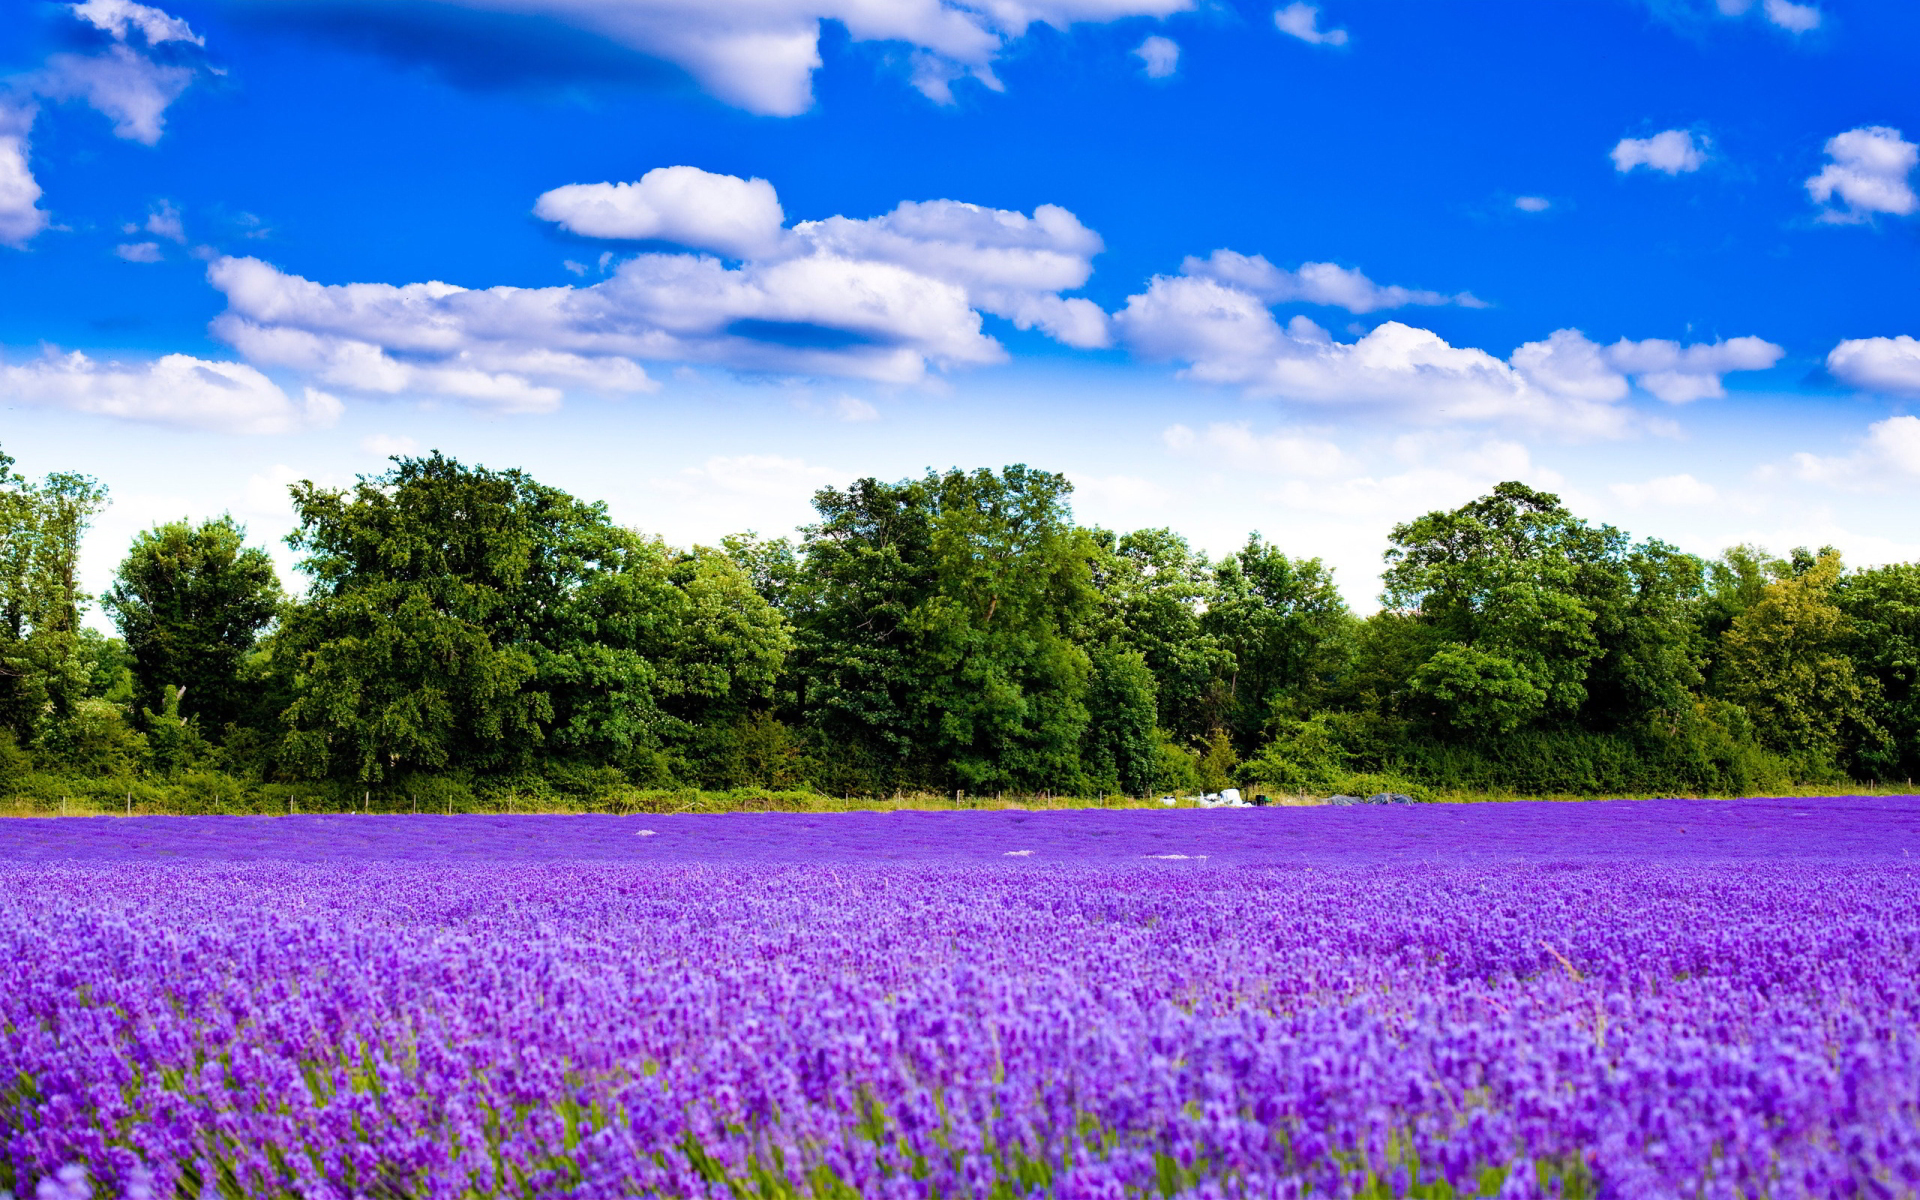 Flowers images beautiful lavender hd wallpaper and background photos flowers images beautiful lavender hd wallpaper and background photos izmirmasajfo